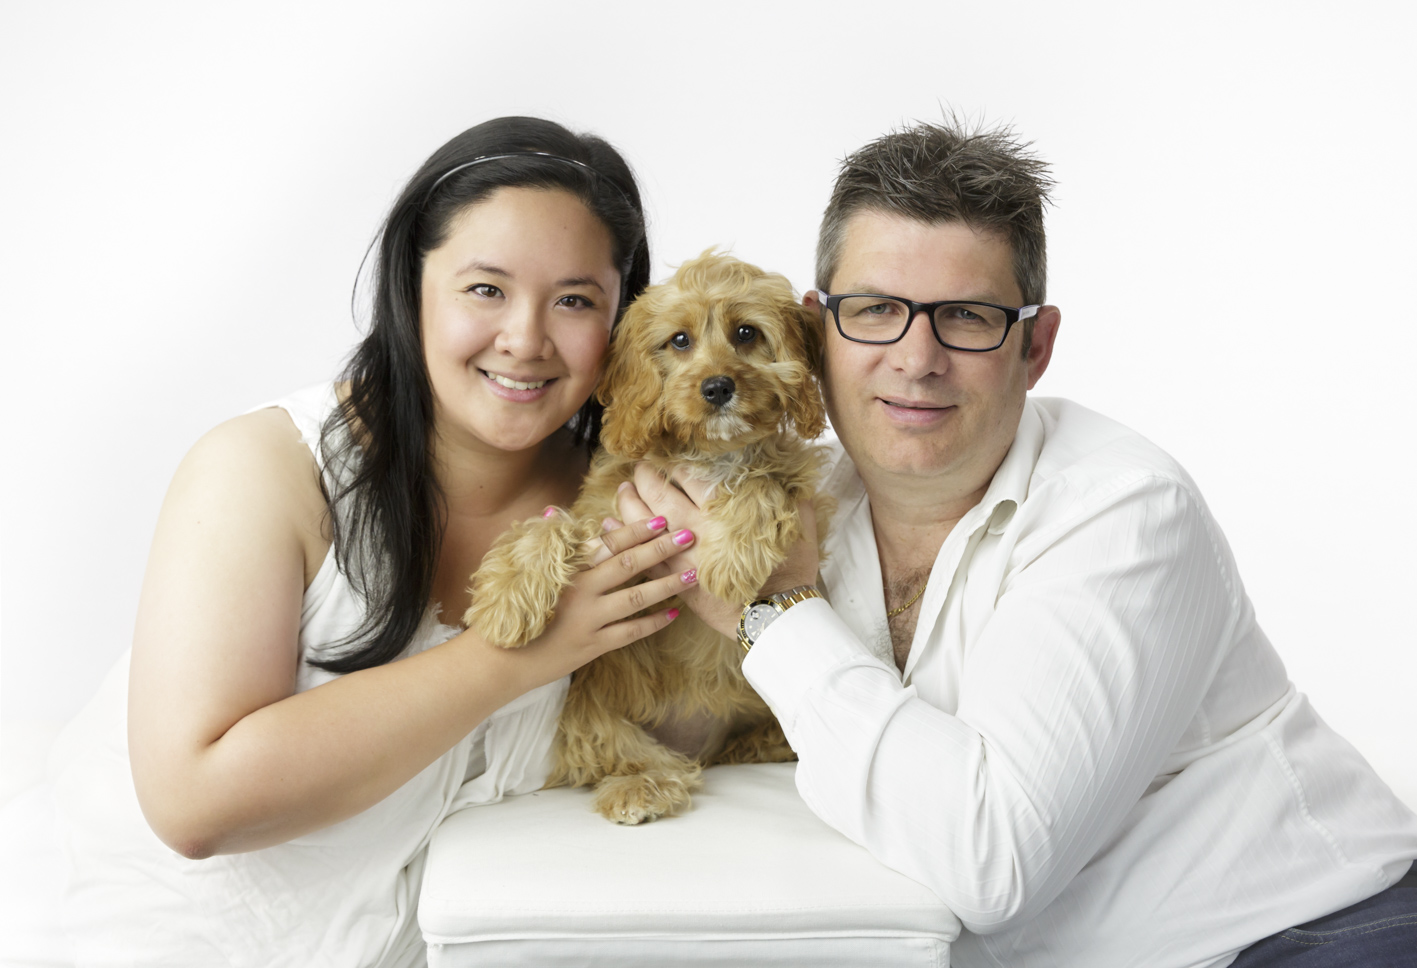 couple and their dog studio portrait